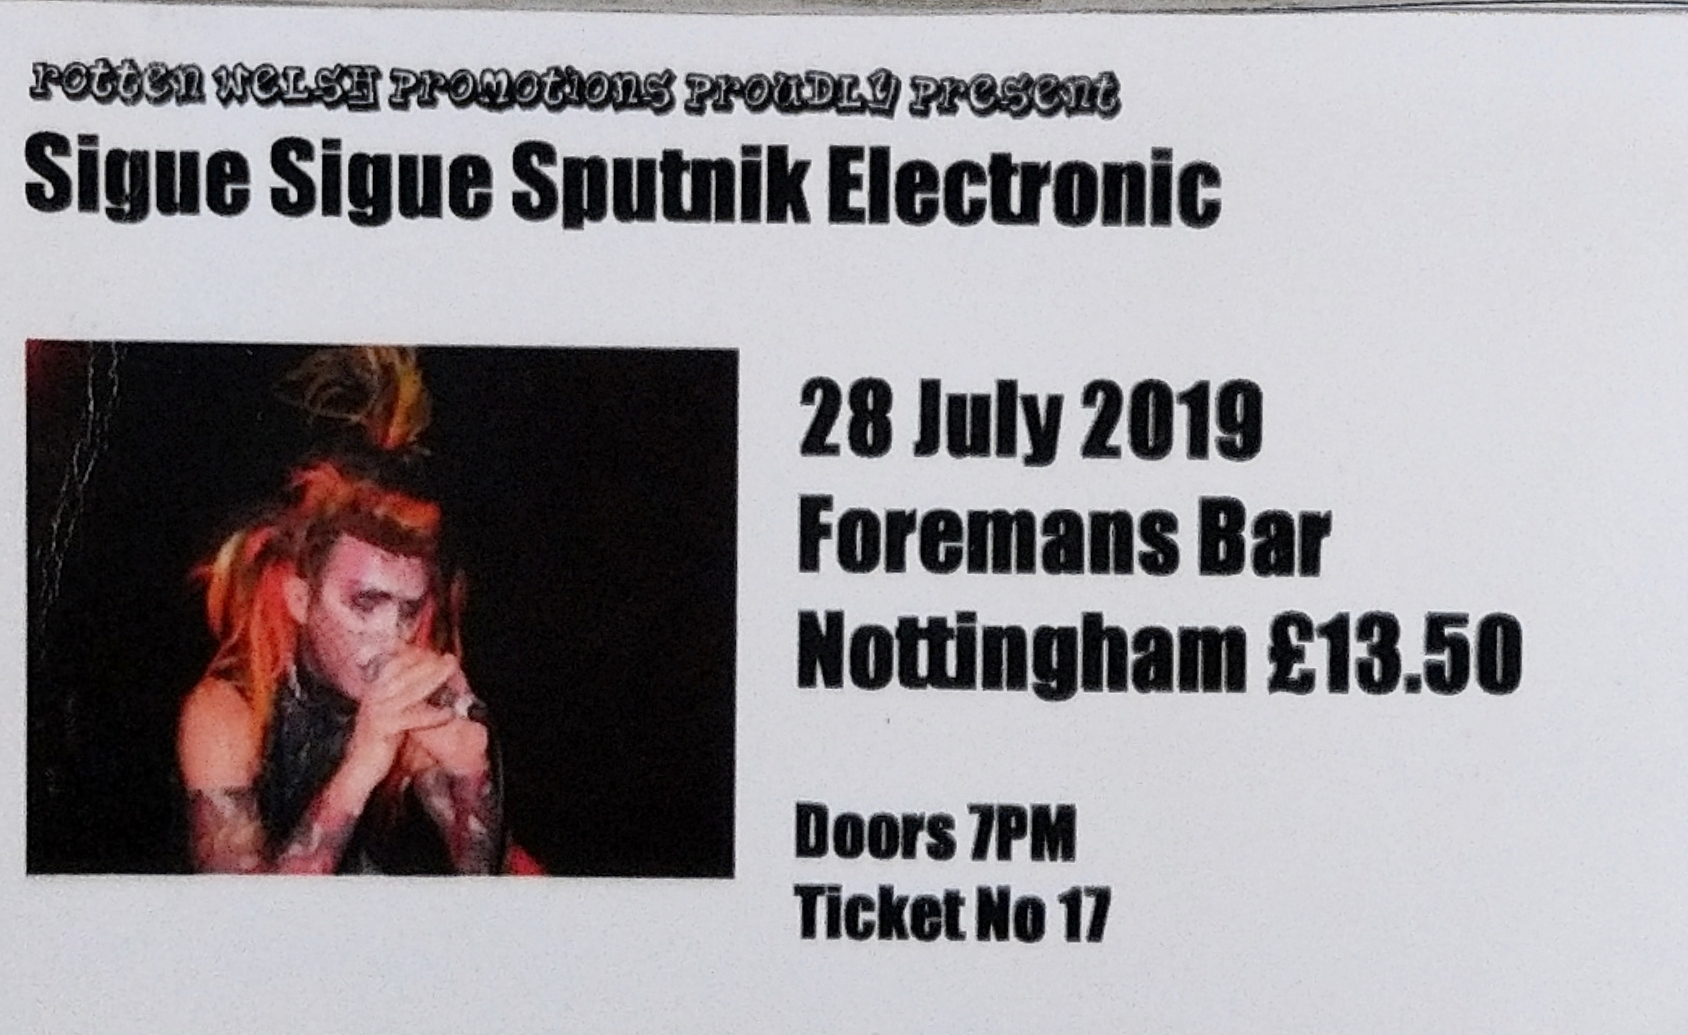 28 July 2019 Sigue Sigue Sputnik Electronic, Foremans Bar, Nottingham, England, UK